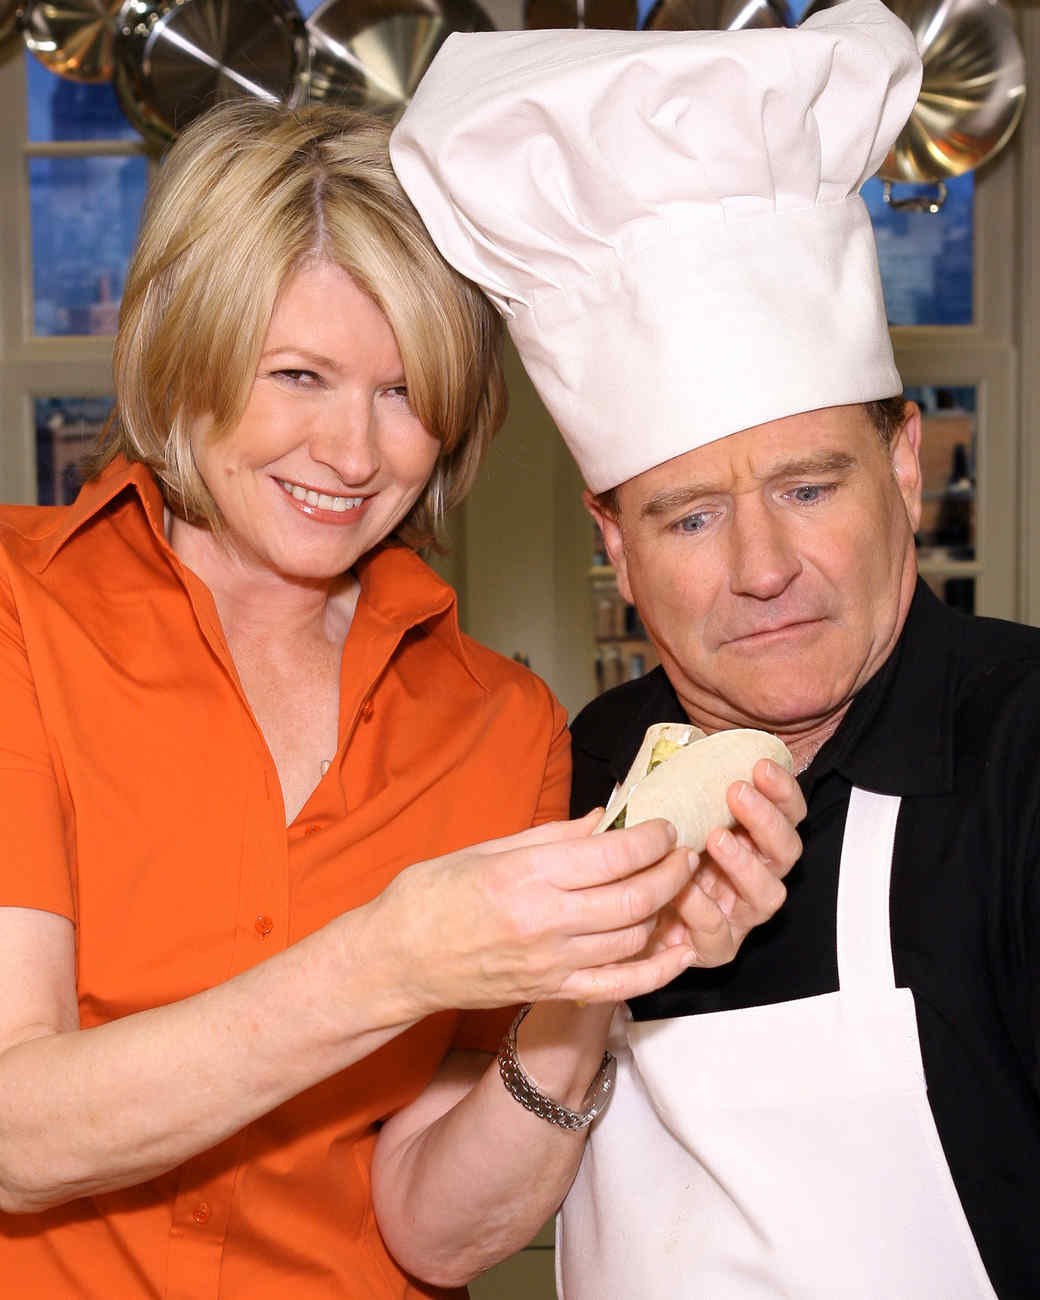 robin-williams-martha-stewart-oq5v2948.jpg